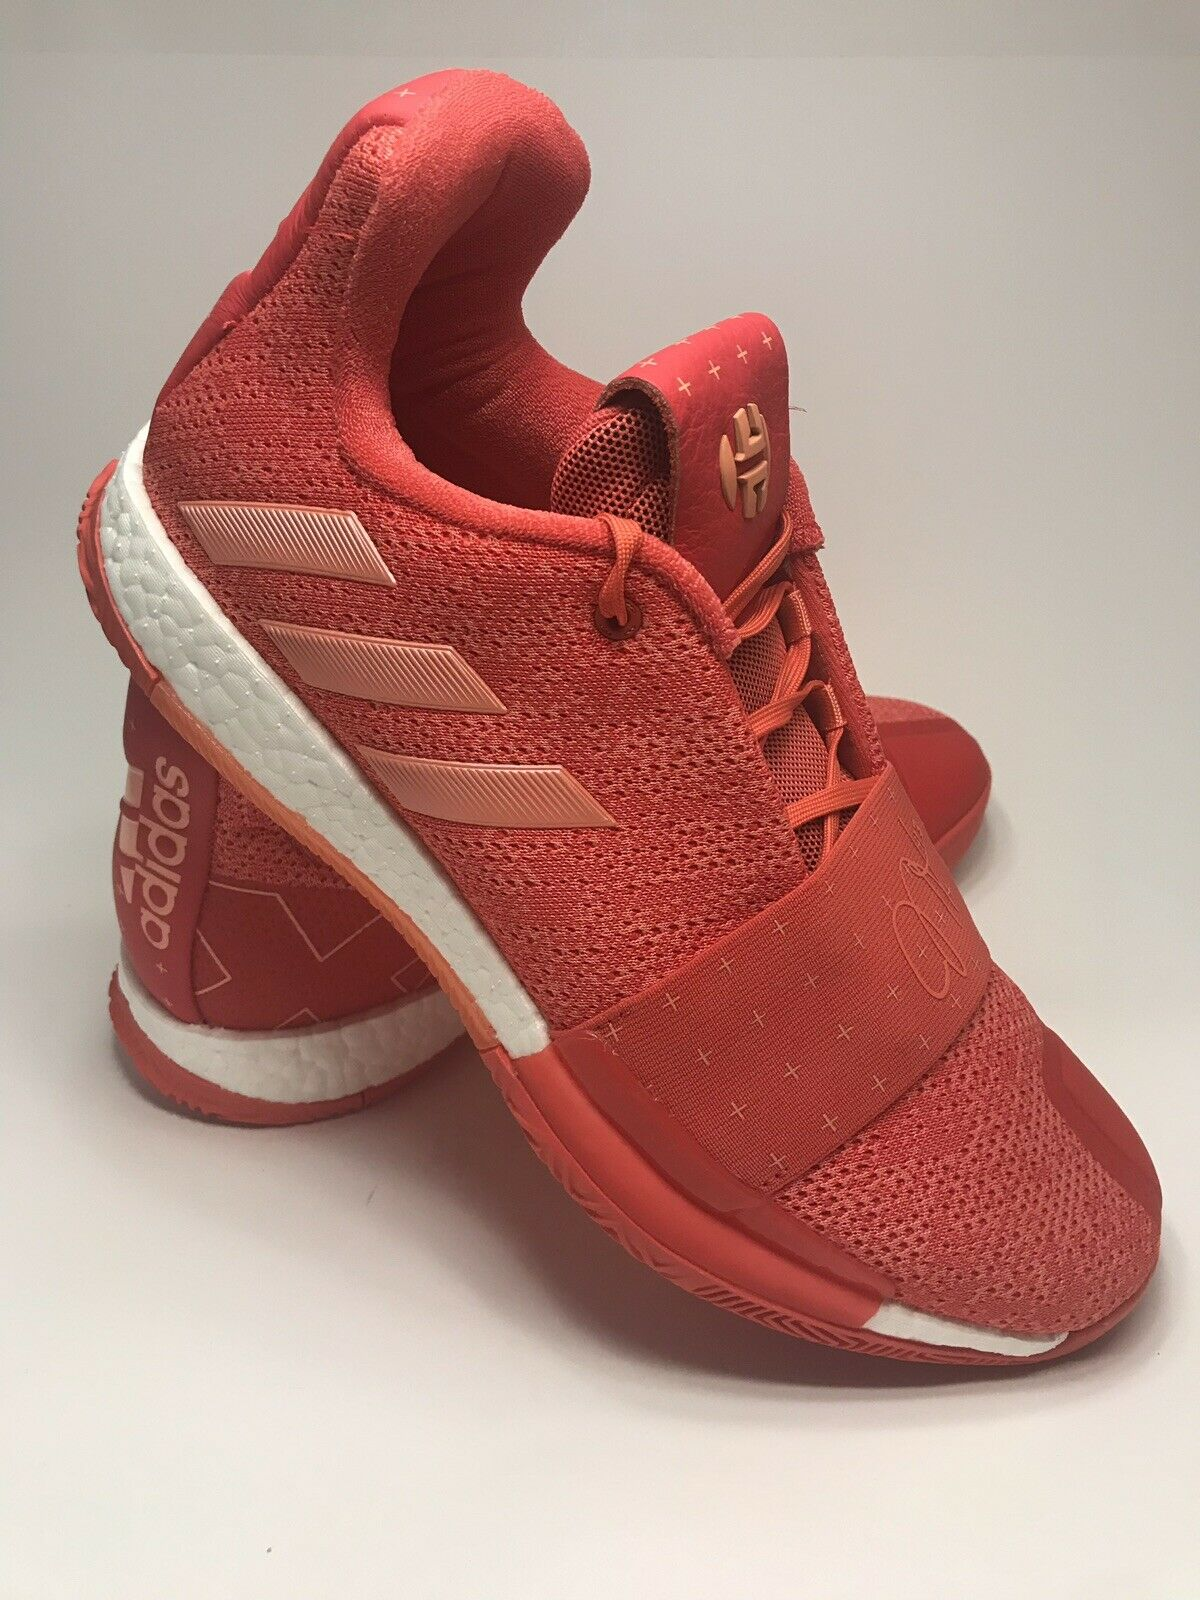 Nuevos Zapatos James HARDEN VOL 3 (D96990) naranja y rojo Houston baloncesto MVP